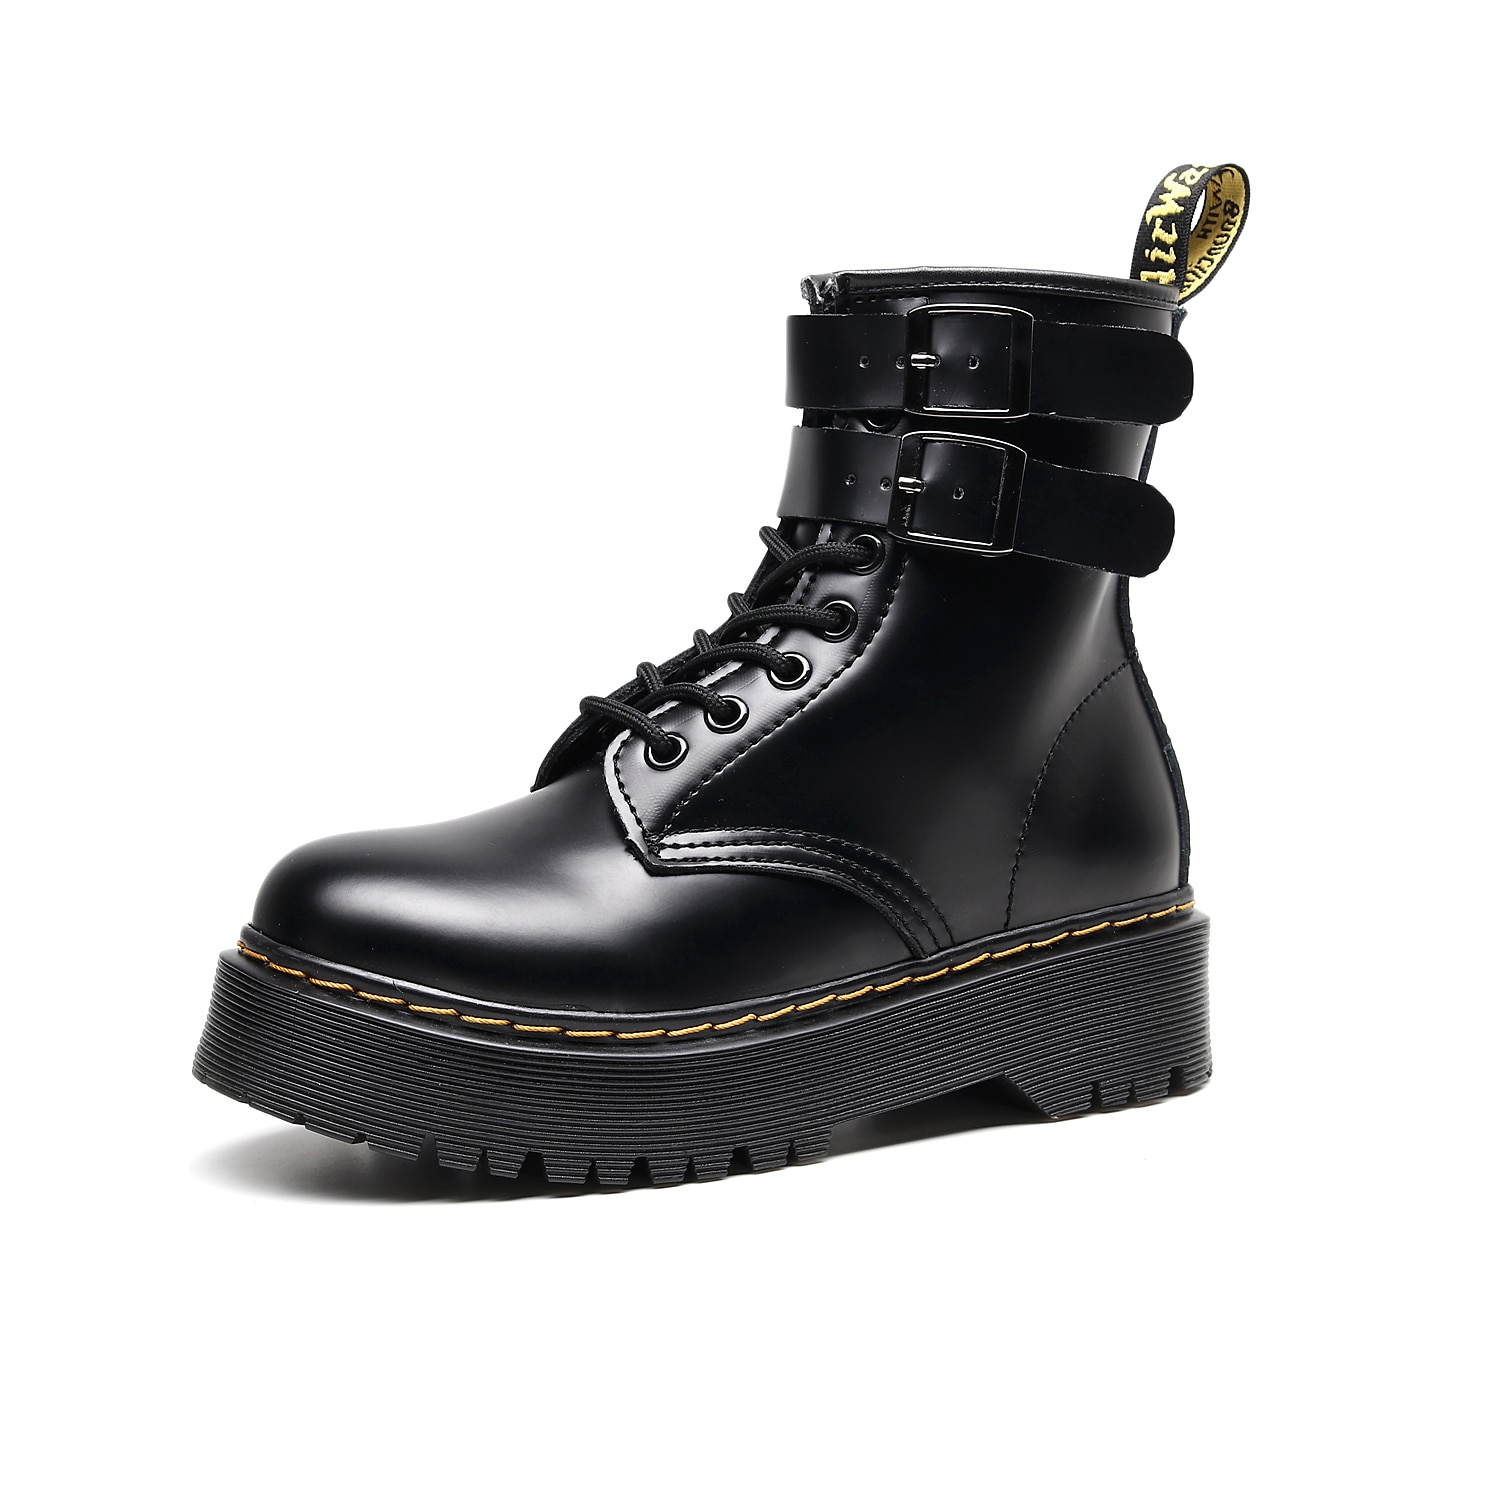 Martens Boots 8-hole Zip Platform Martin Boots Women Retro Lace-up Boots Men Women Ankle Boots